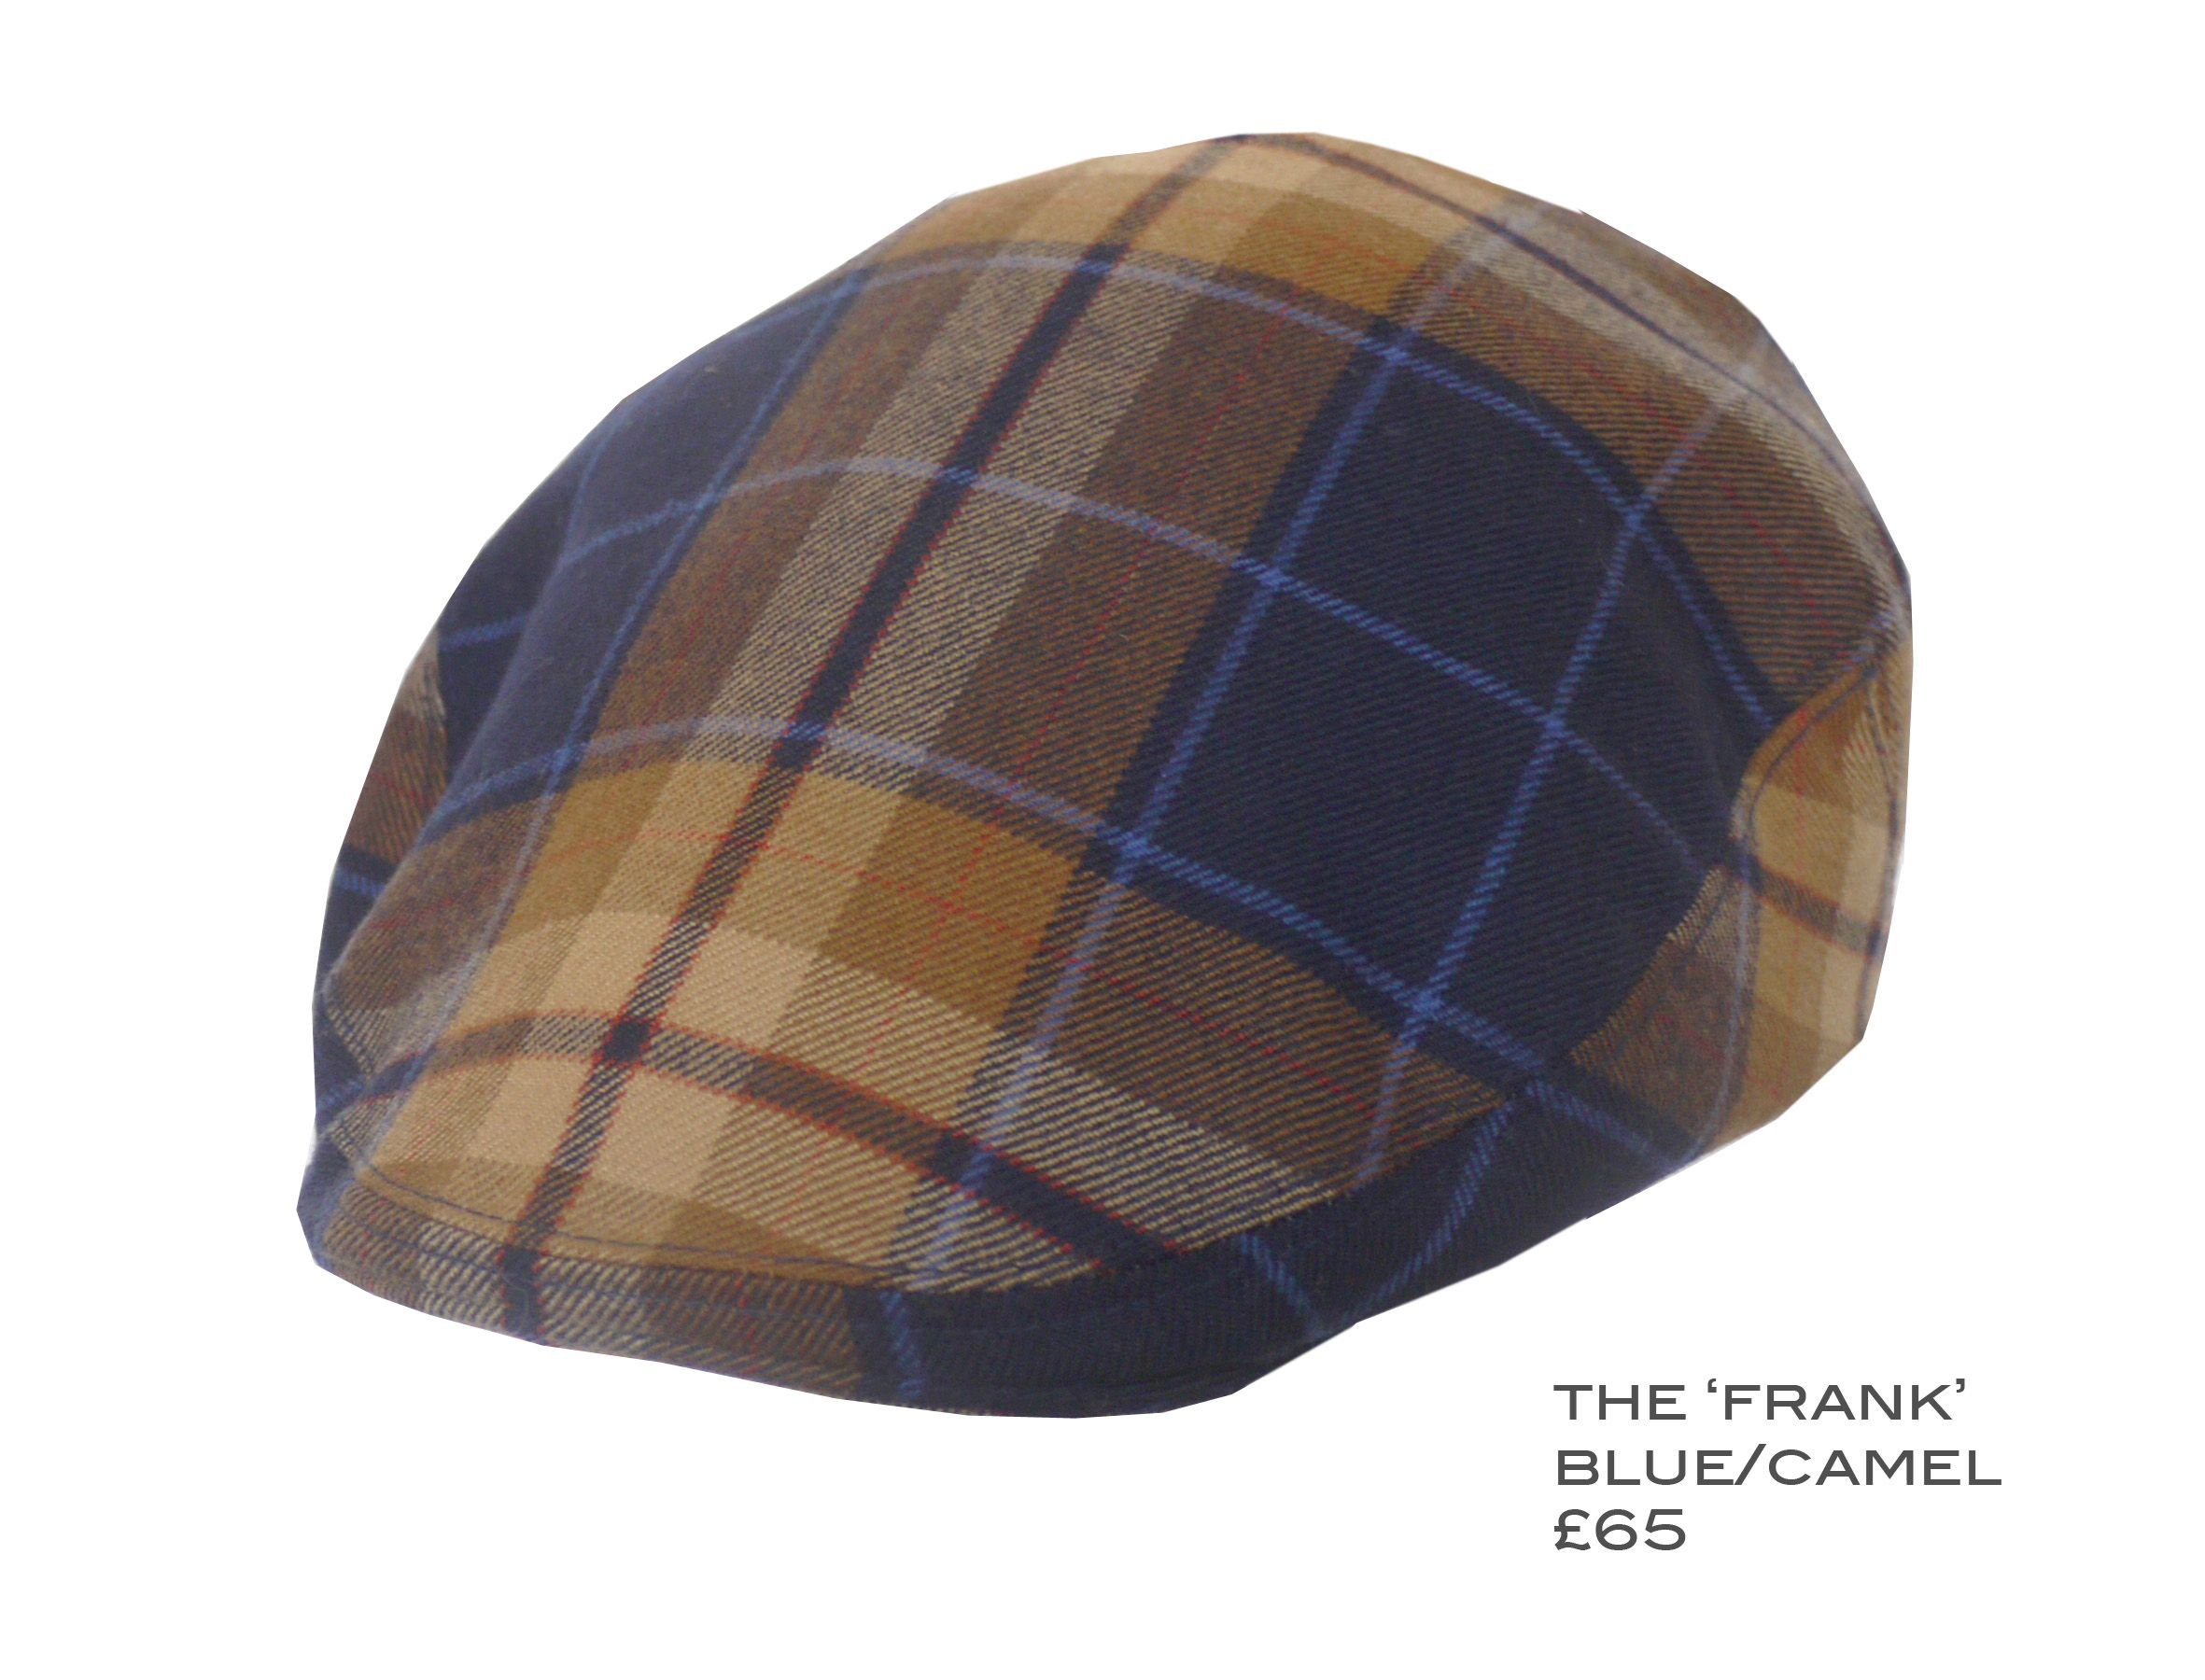 KEMPADOO MILLAR THE FRANK. BLUE CAMEL CHECK FLAT CAP. BRITISH MADE MENS  ACCESSORIES 4d8c0bec87d8